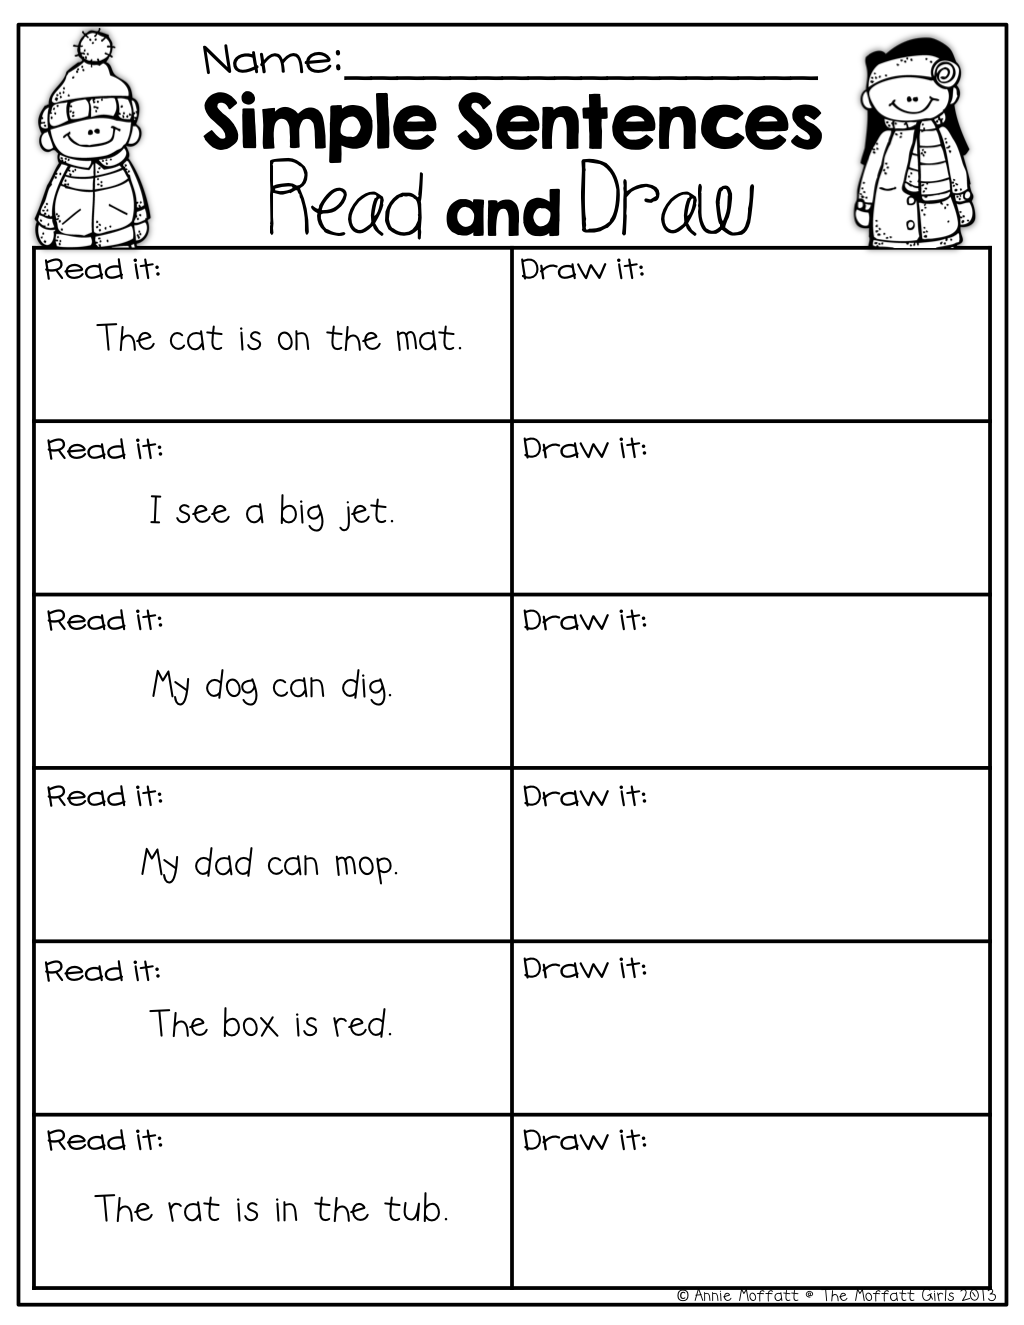 Simple Sentences With Sight Words And Cvc Words Read And Draw Perfect For Beginning Readers